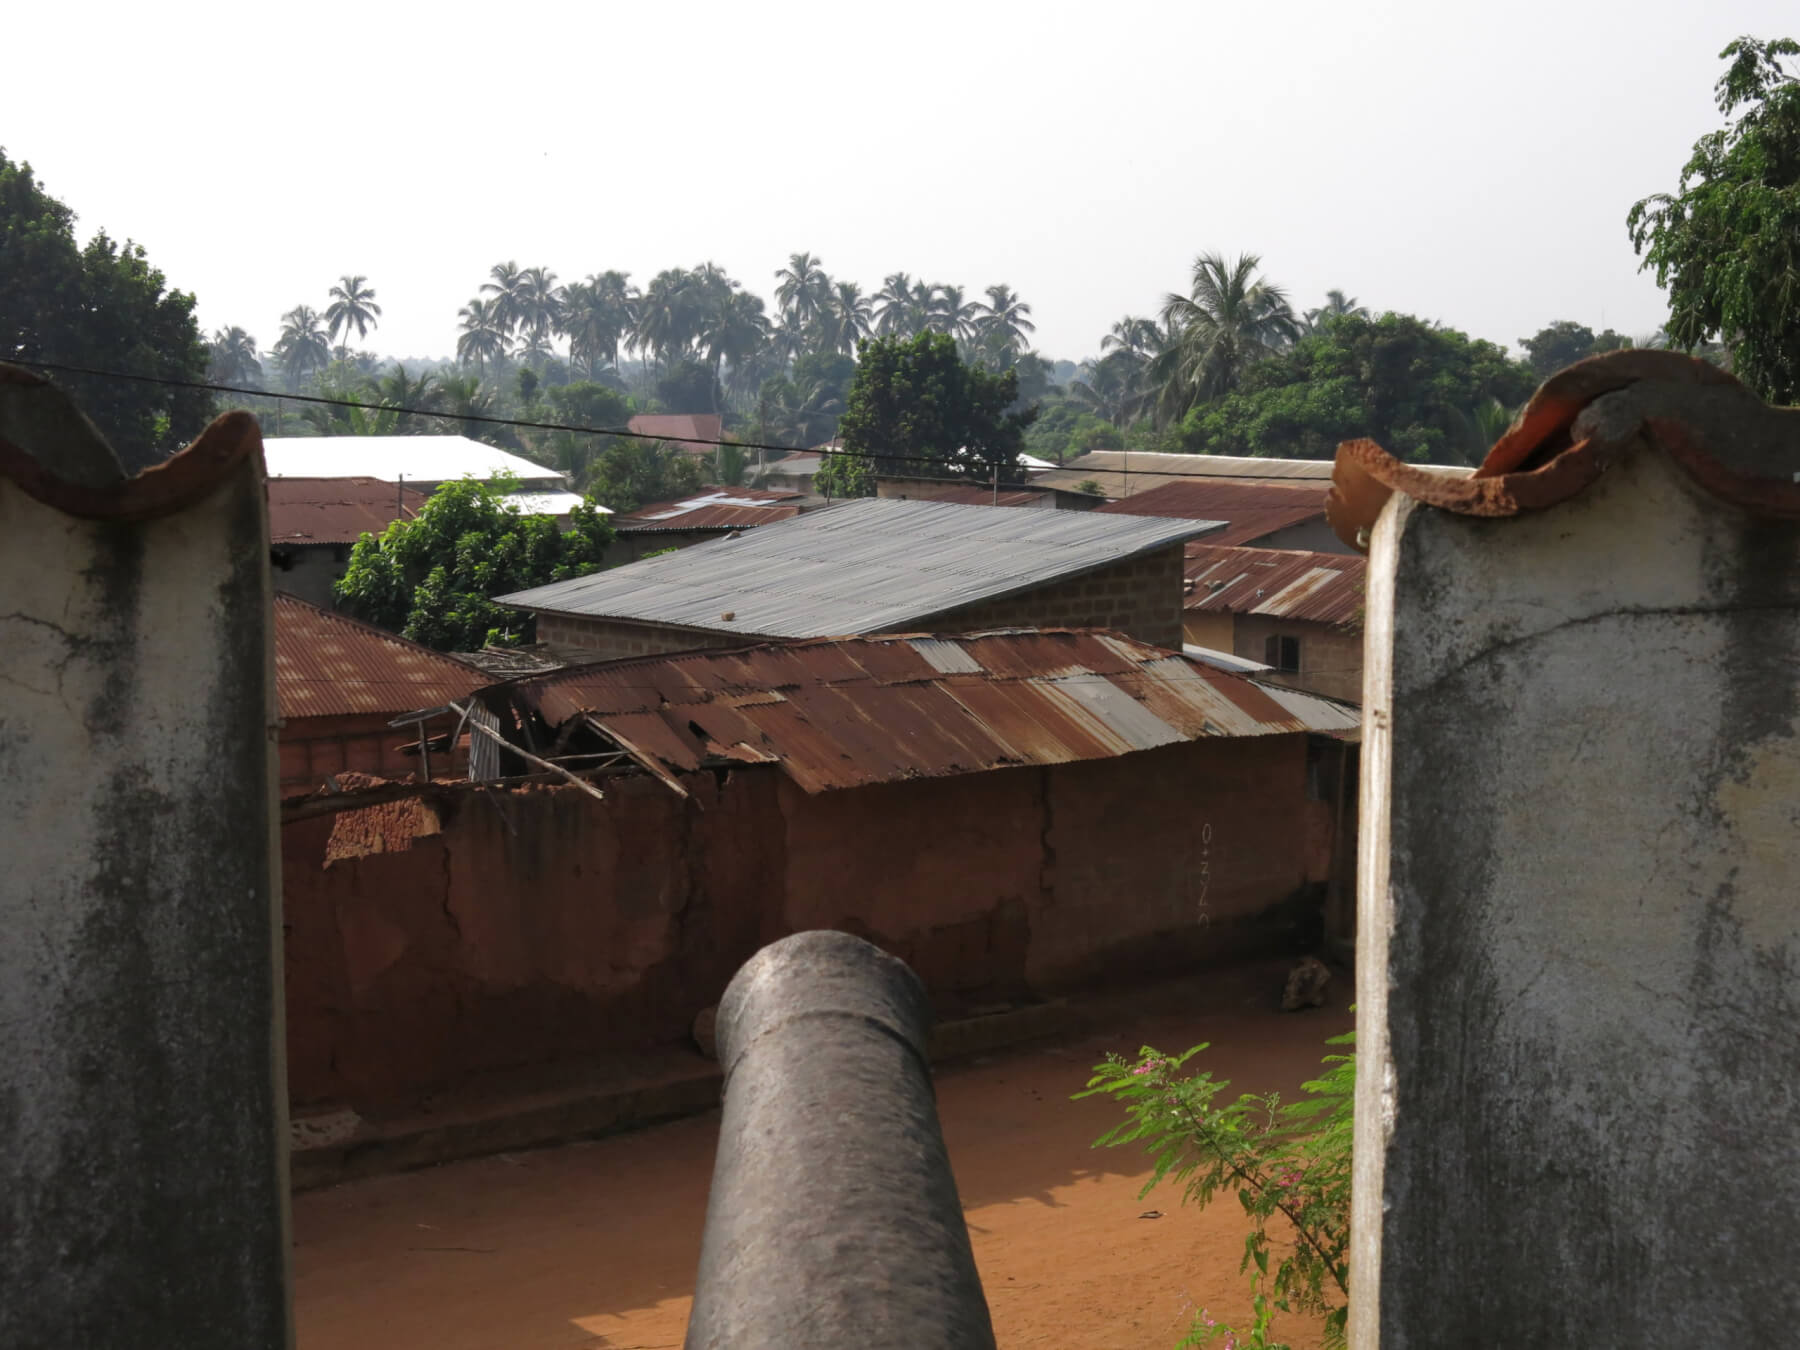 View from the Portuguese Fort in Ouidah